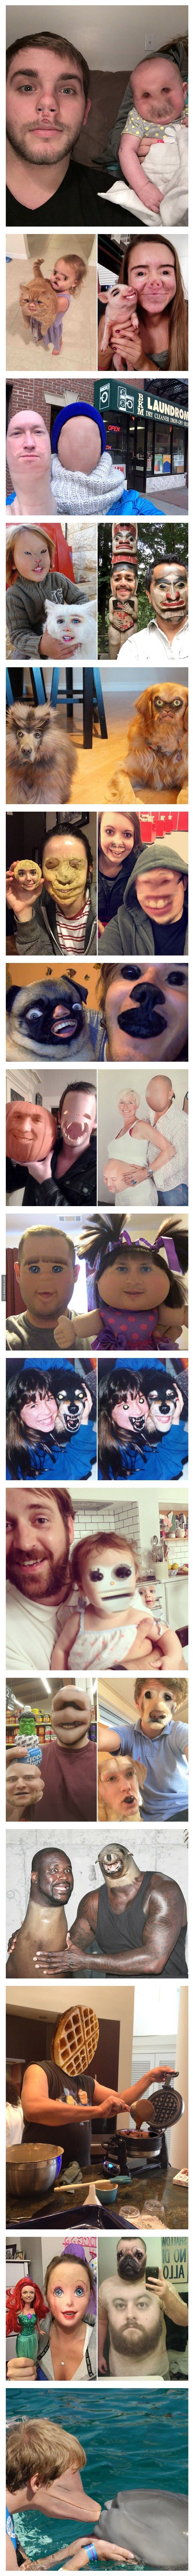 When faceswap is done horribly right! XD